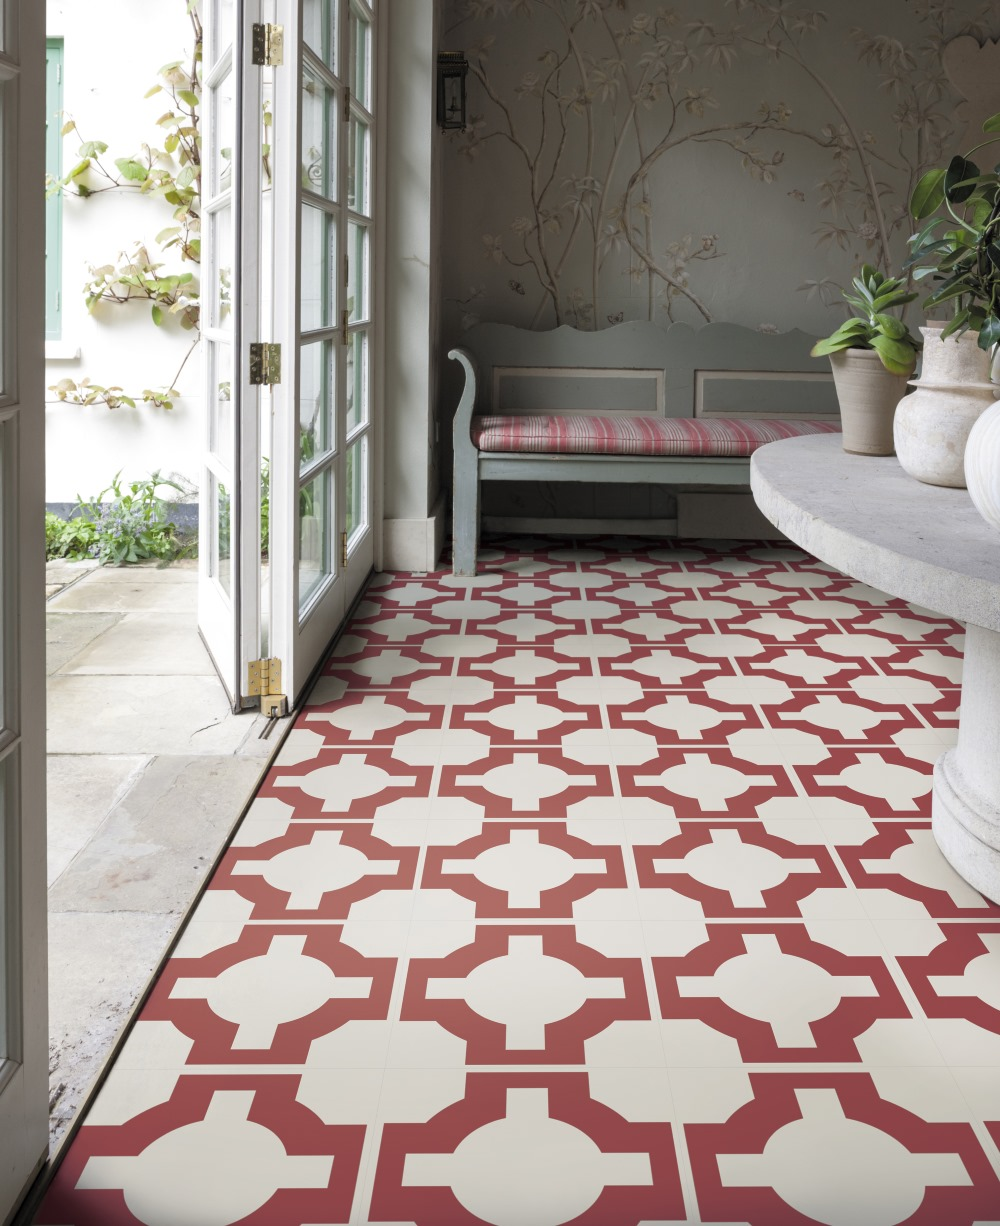 Harvey Maria Vinyl Floor Tiles Design Traditional Kitchen: Flooring We Want For Christmas